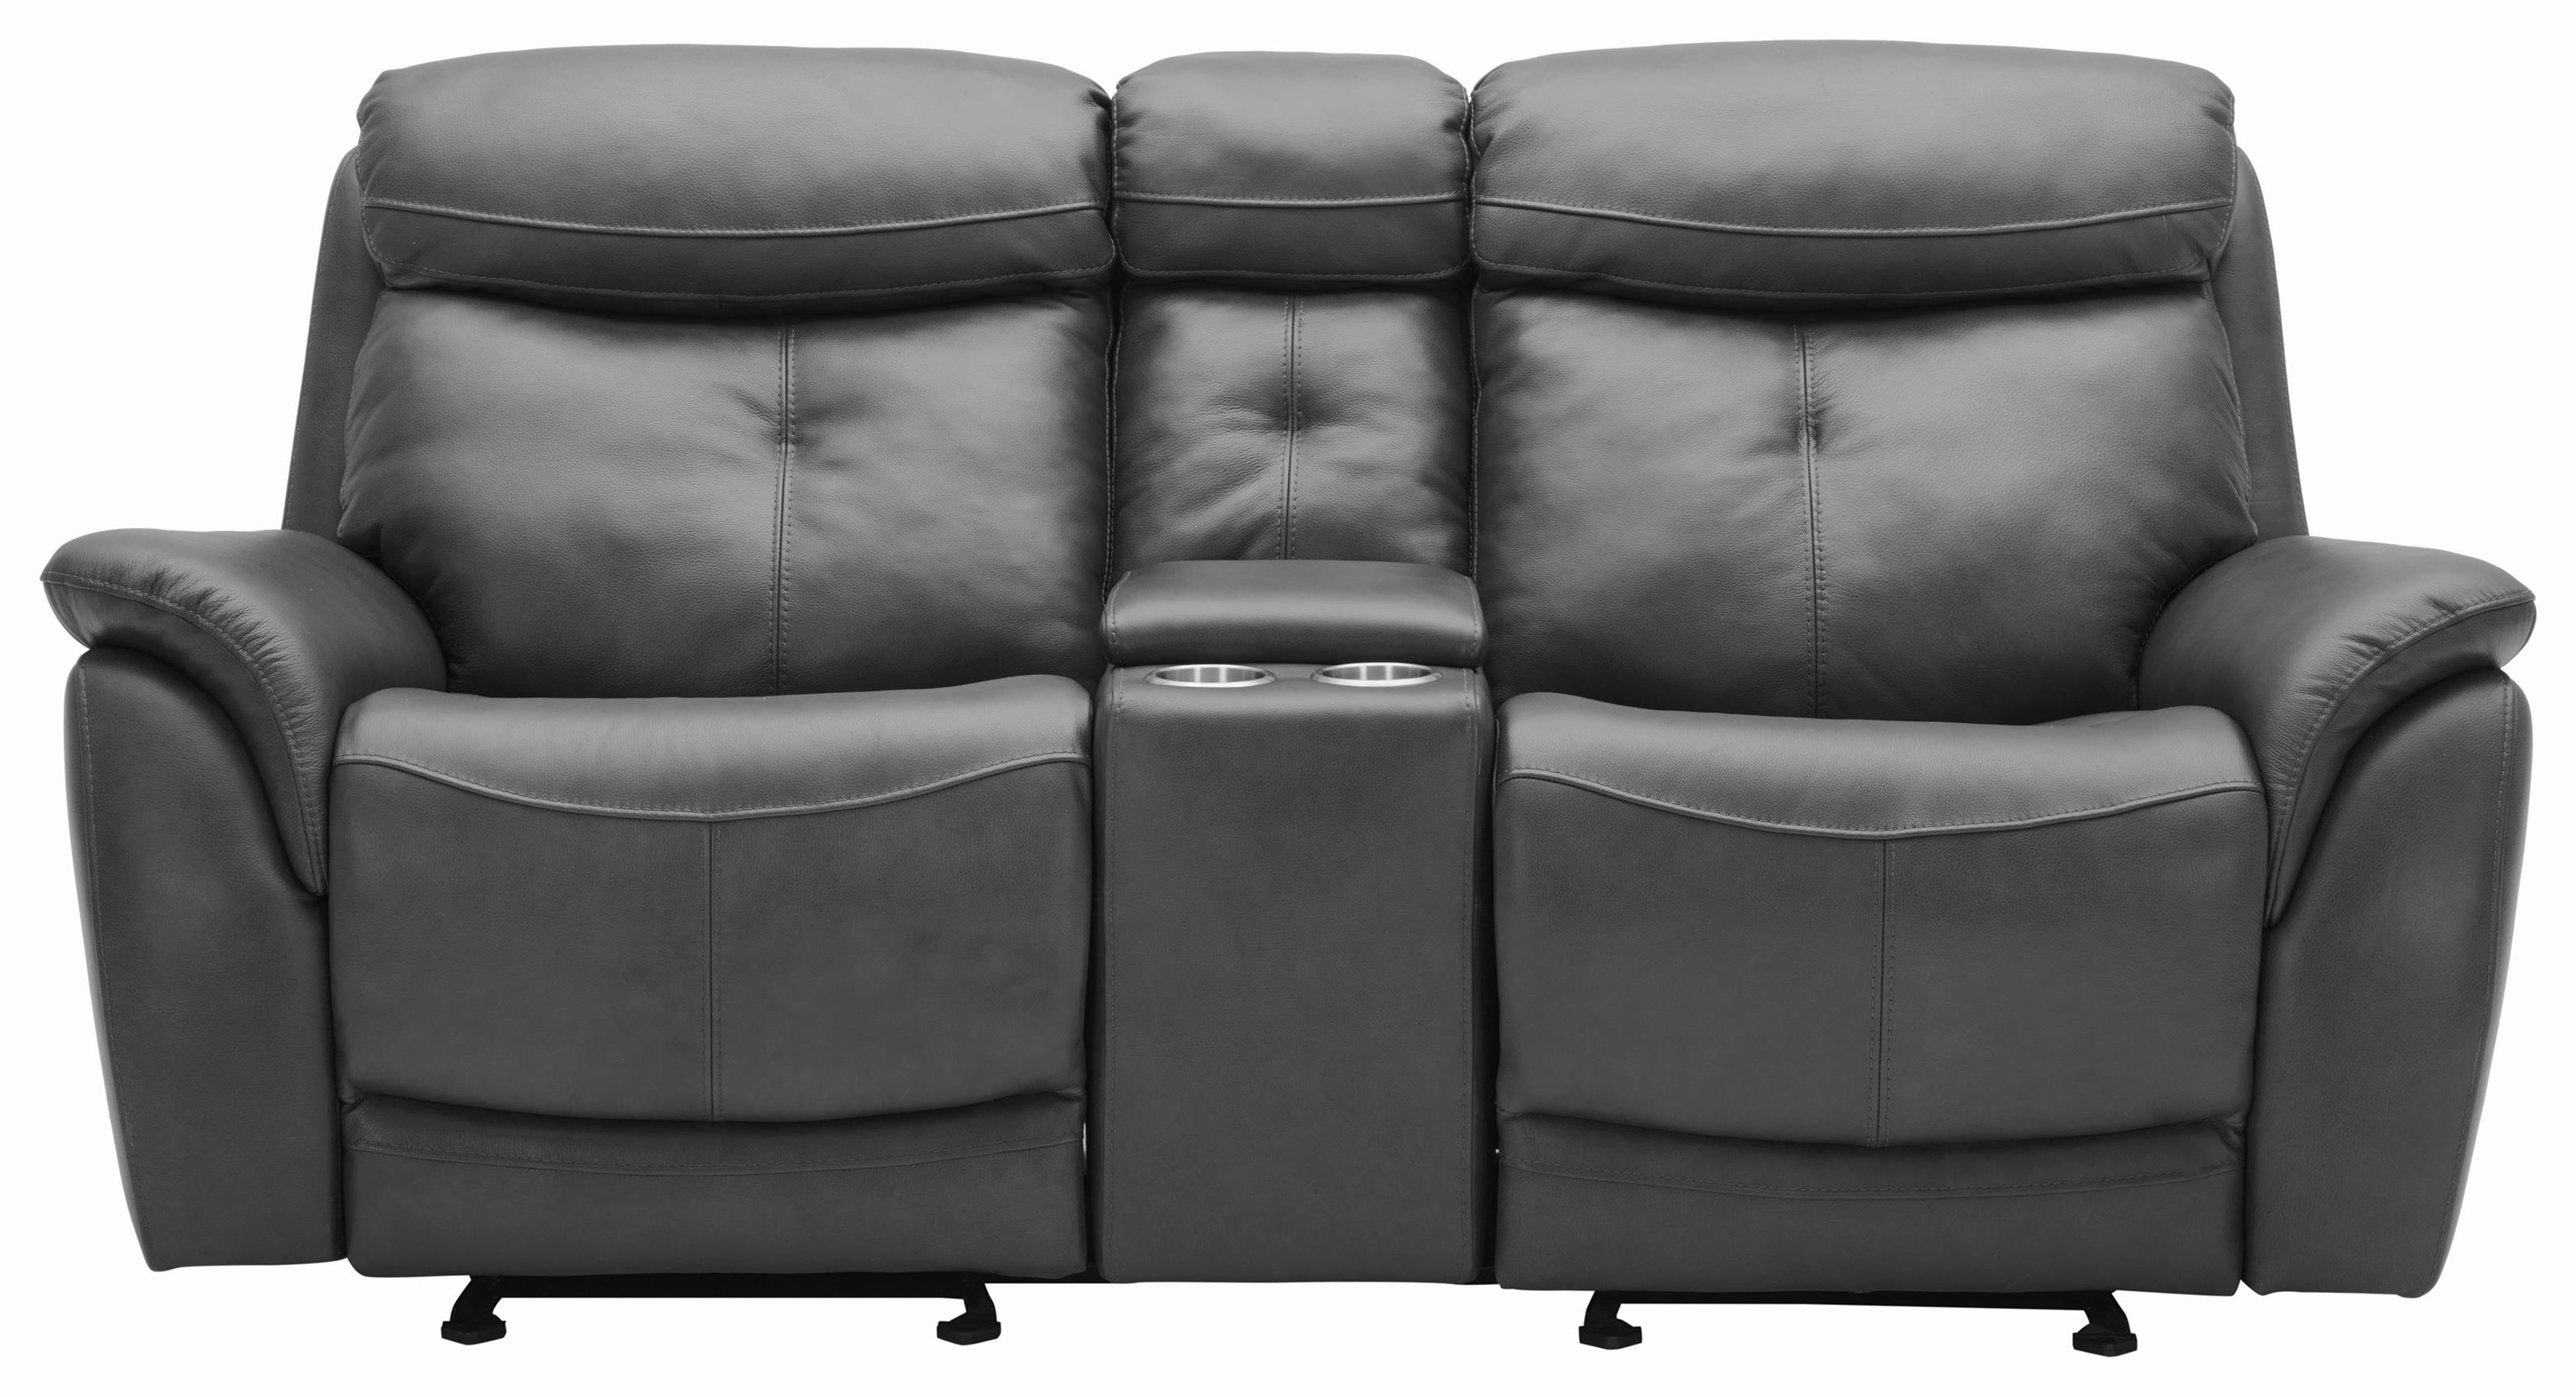 Largos Reclining Leather Loveseat with Console by K.C. at Walker's Furniture